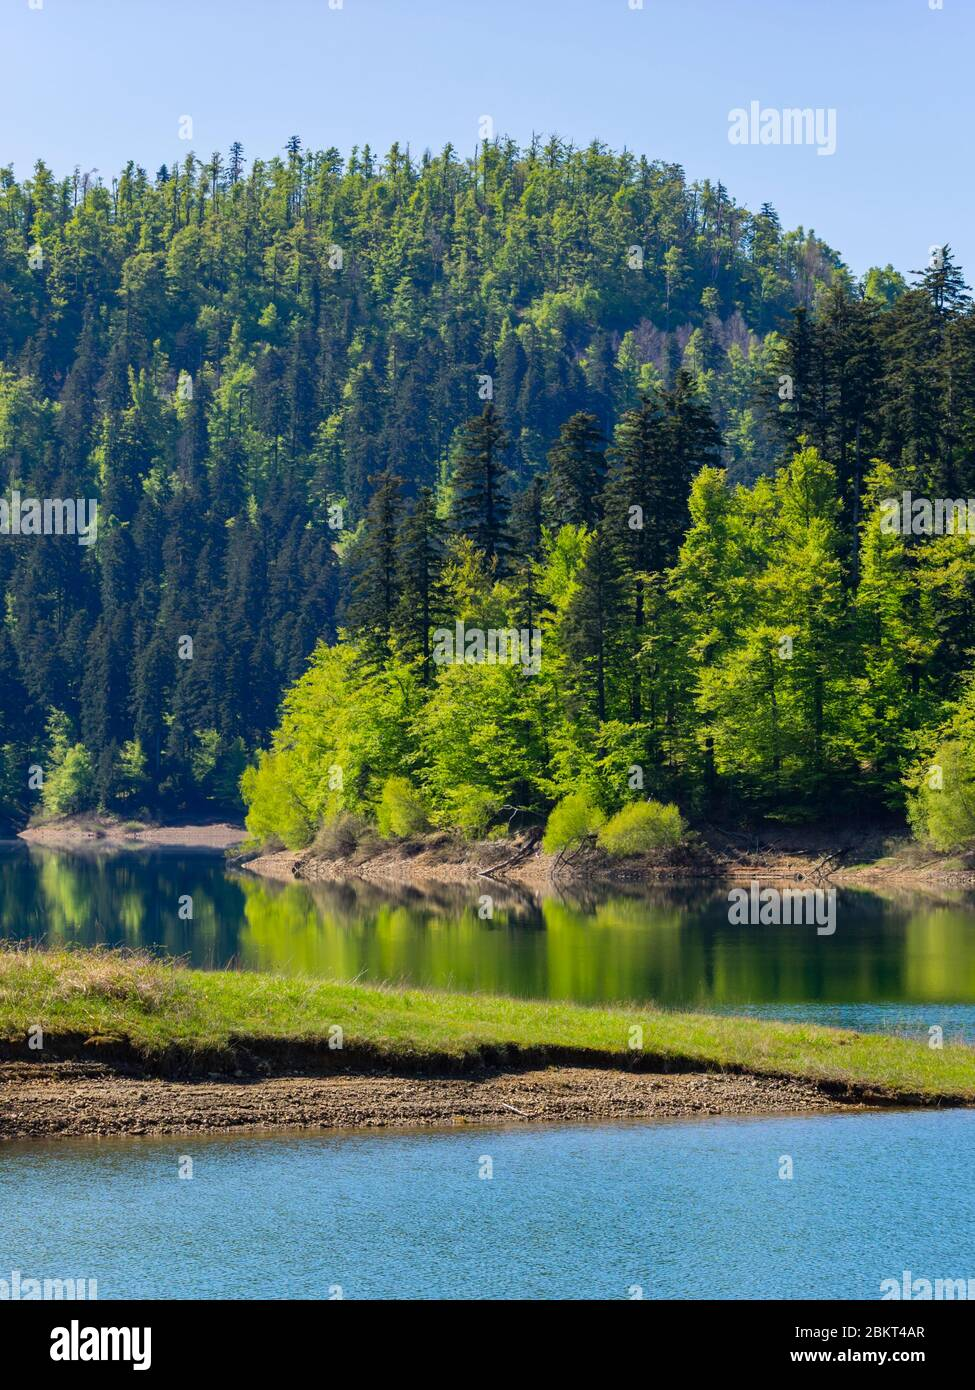 Spring season in Green forest woodland Lokve lake Croatia Europe Stock Photo